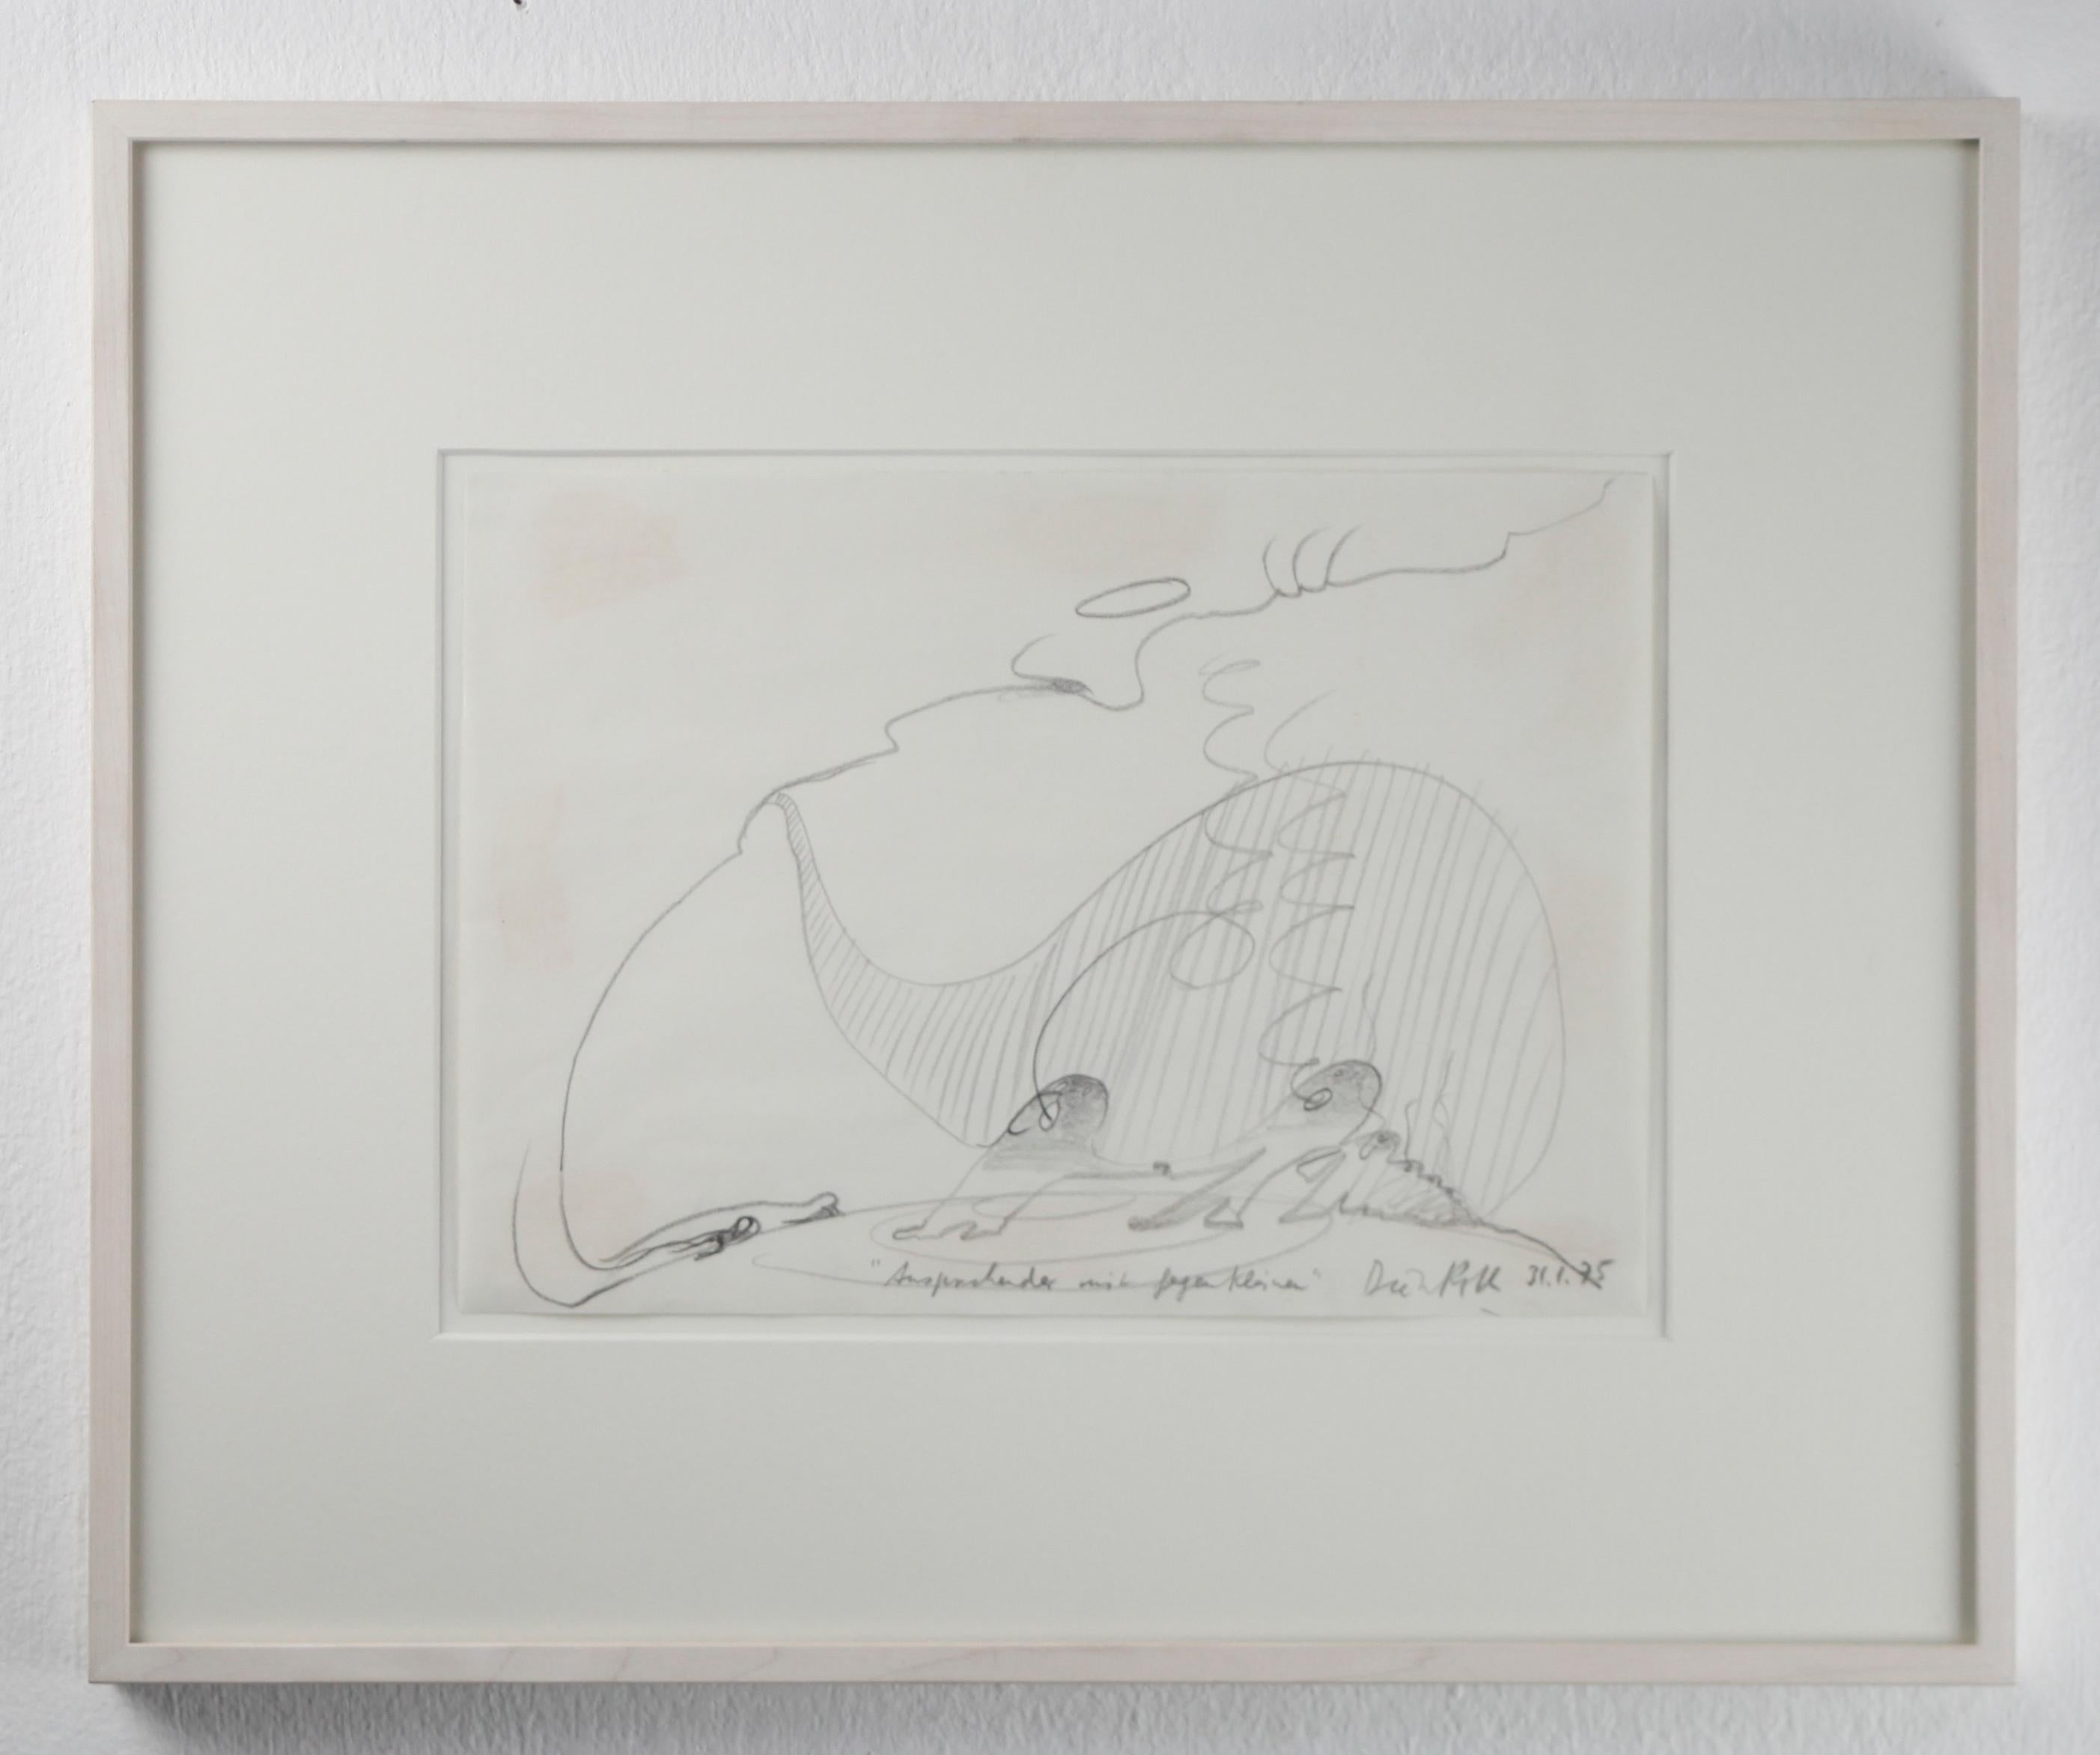 Ansprechender mit Gegenkleinen // Pencil on paper // signed and titled by Roth